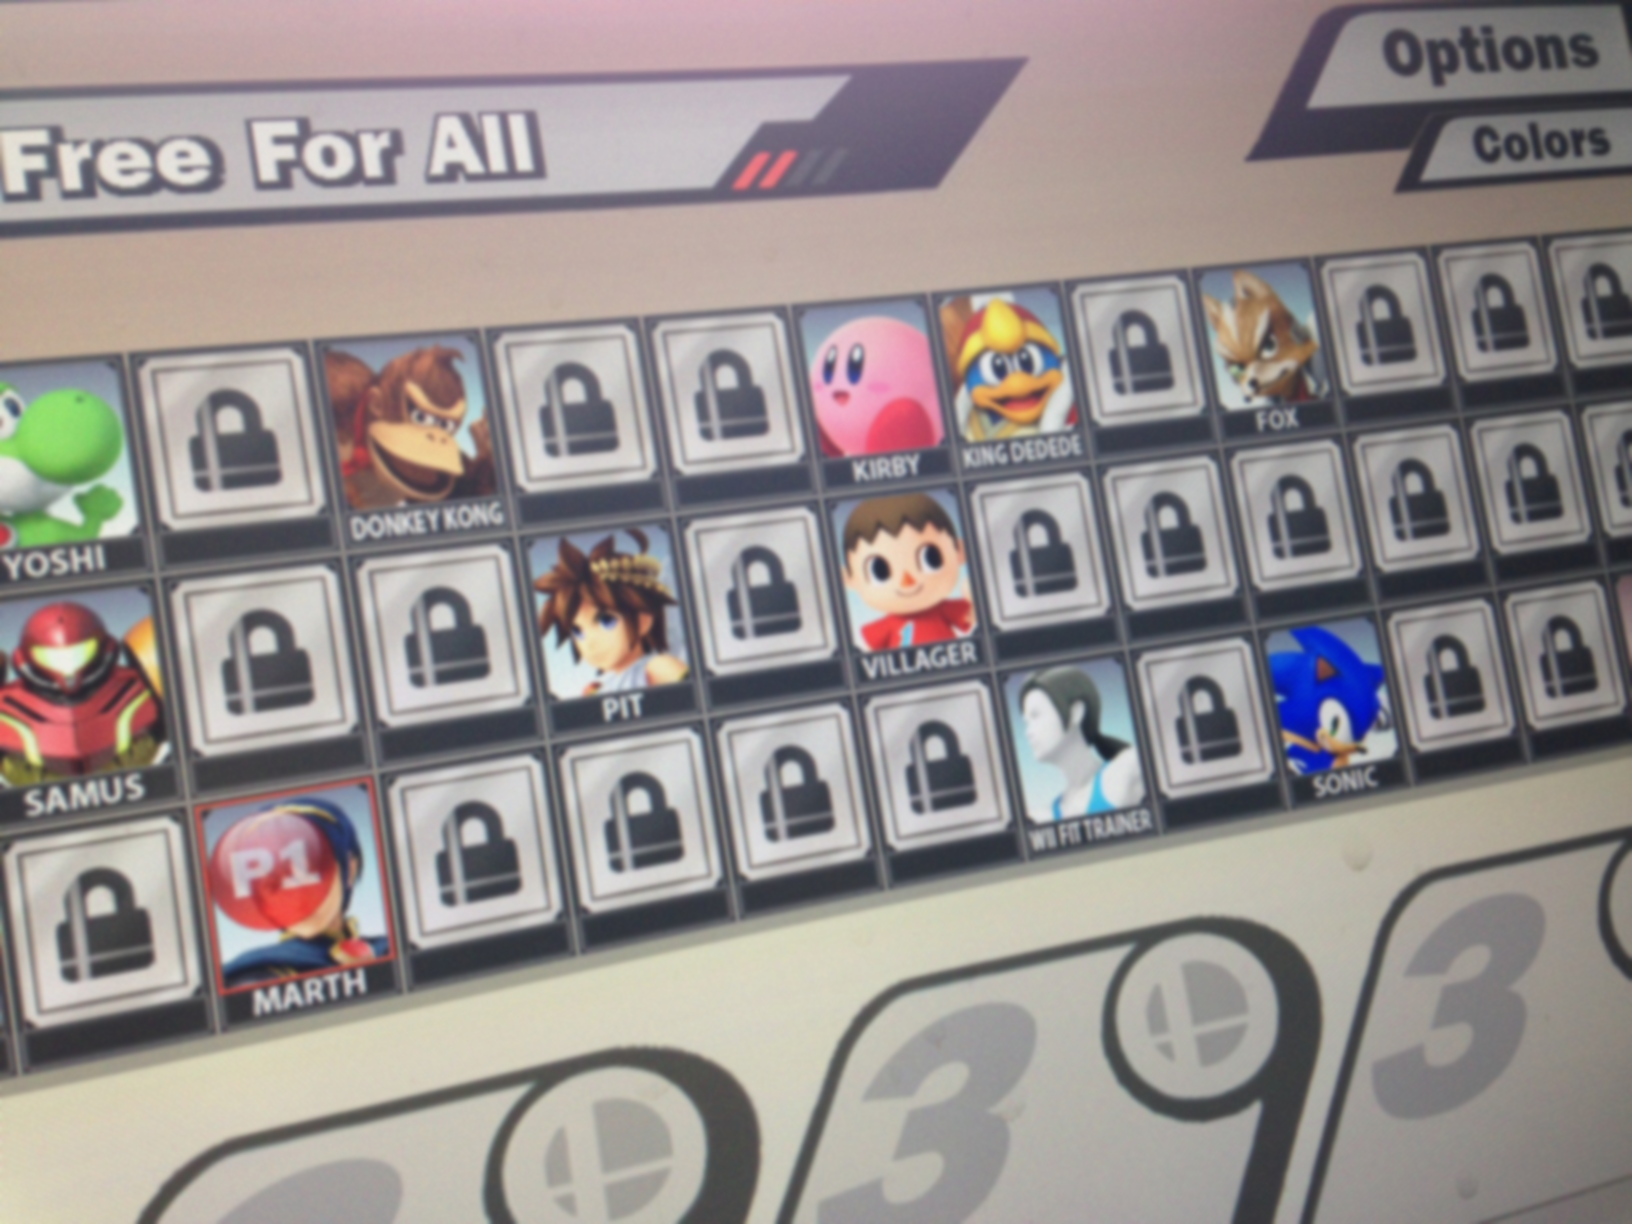 character select for smash bros causes fan meltdown fake